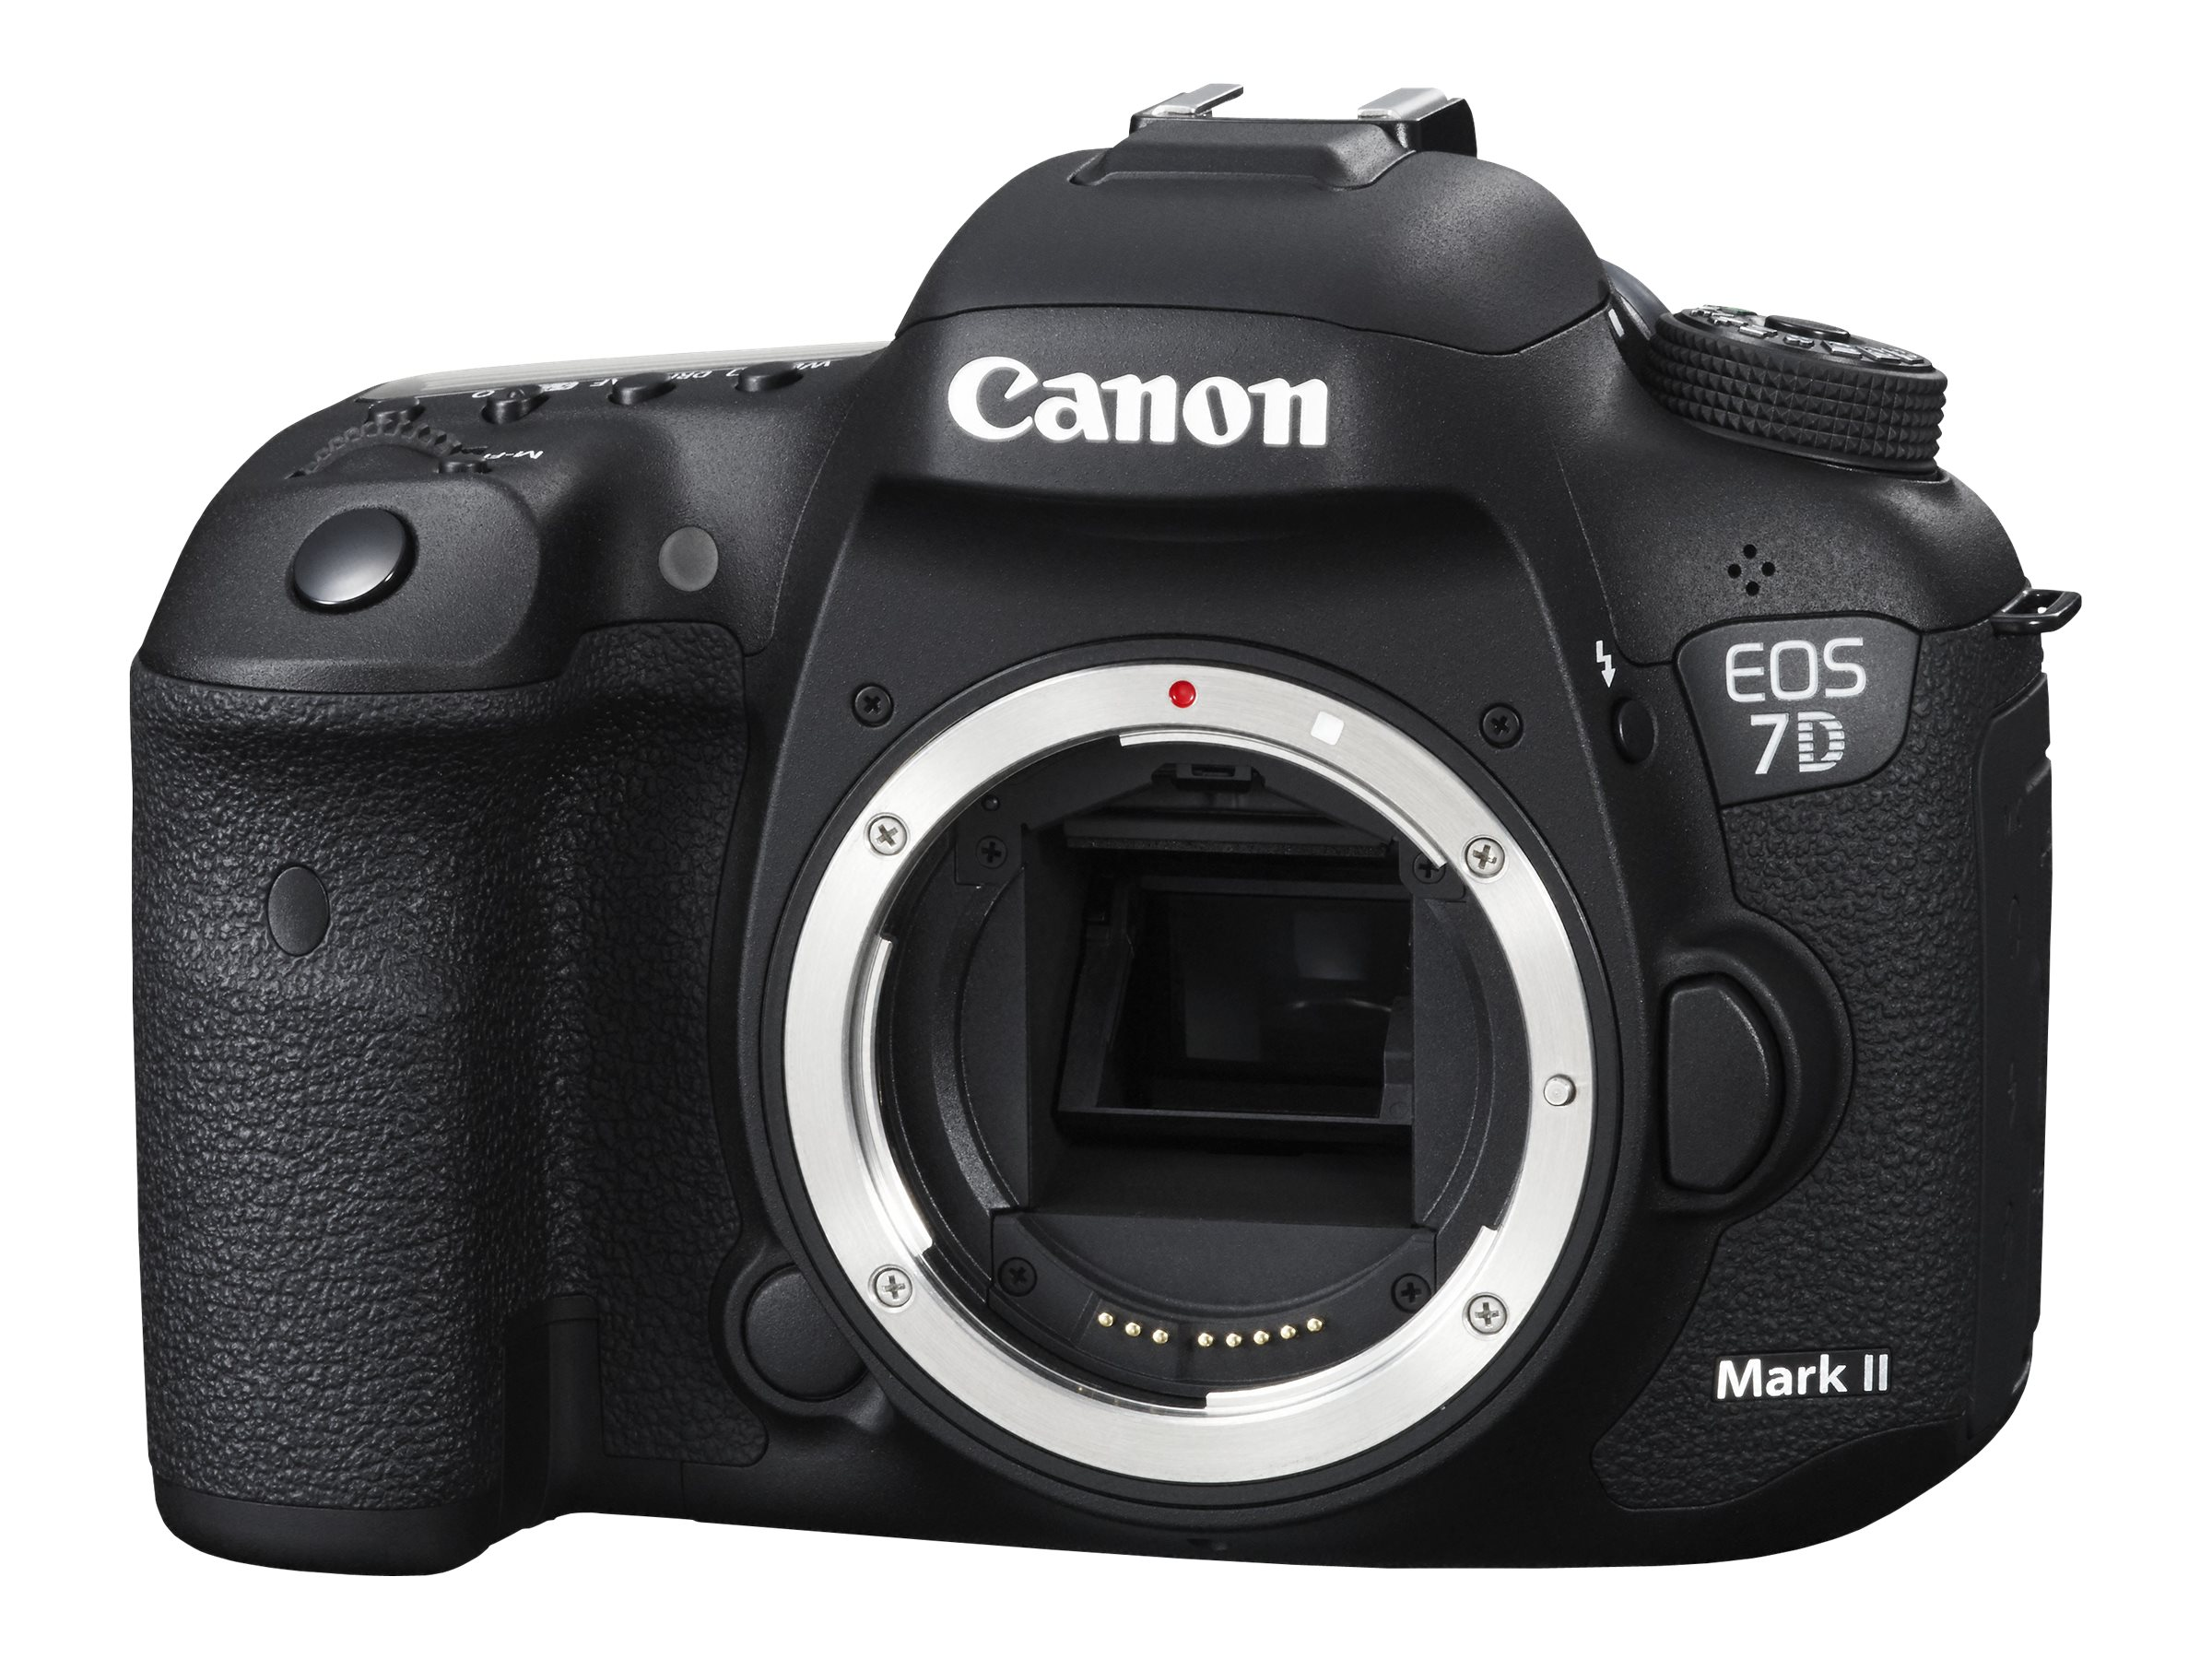 Canon EOS 7D Mark II DSLR Camera, 20.2MP, Black (Body Only)